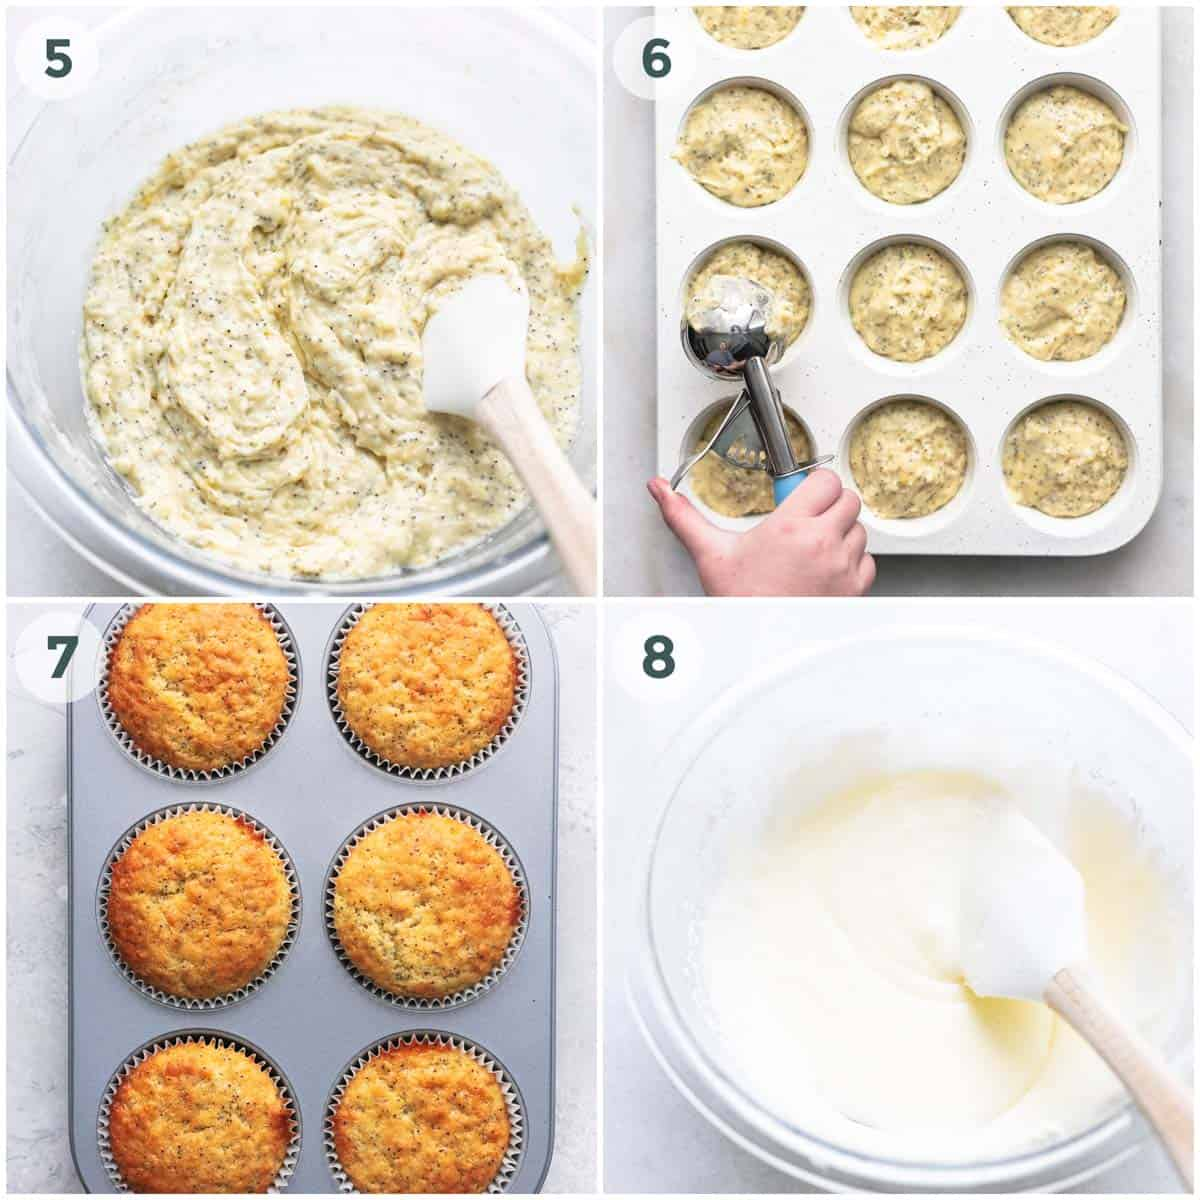 collage of four images depicting preparation of muffin batter